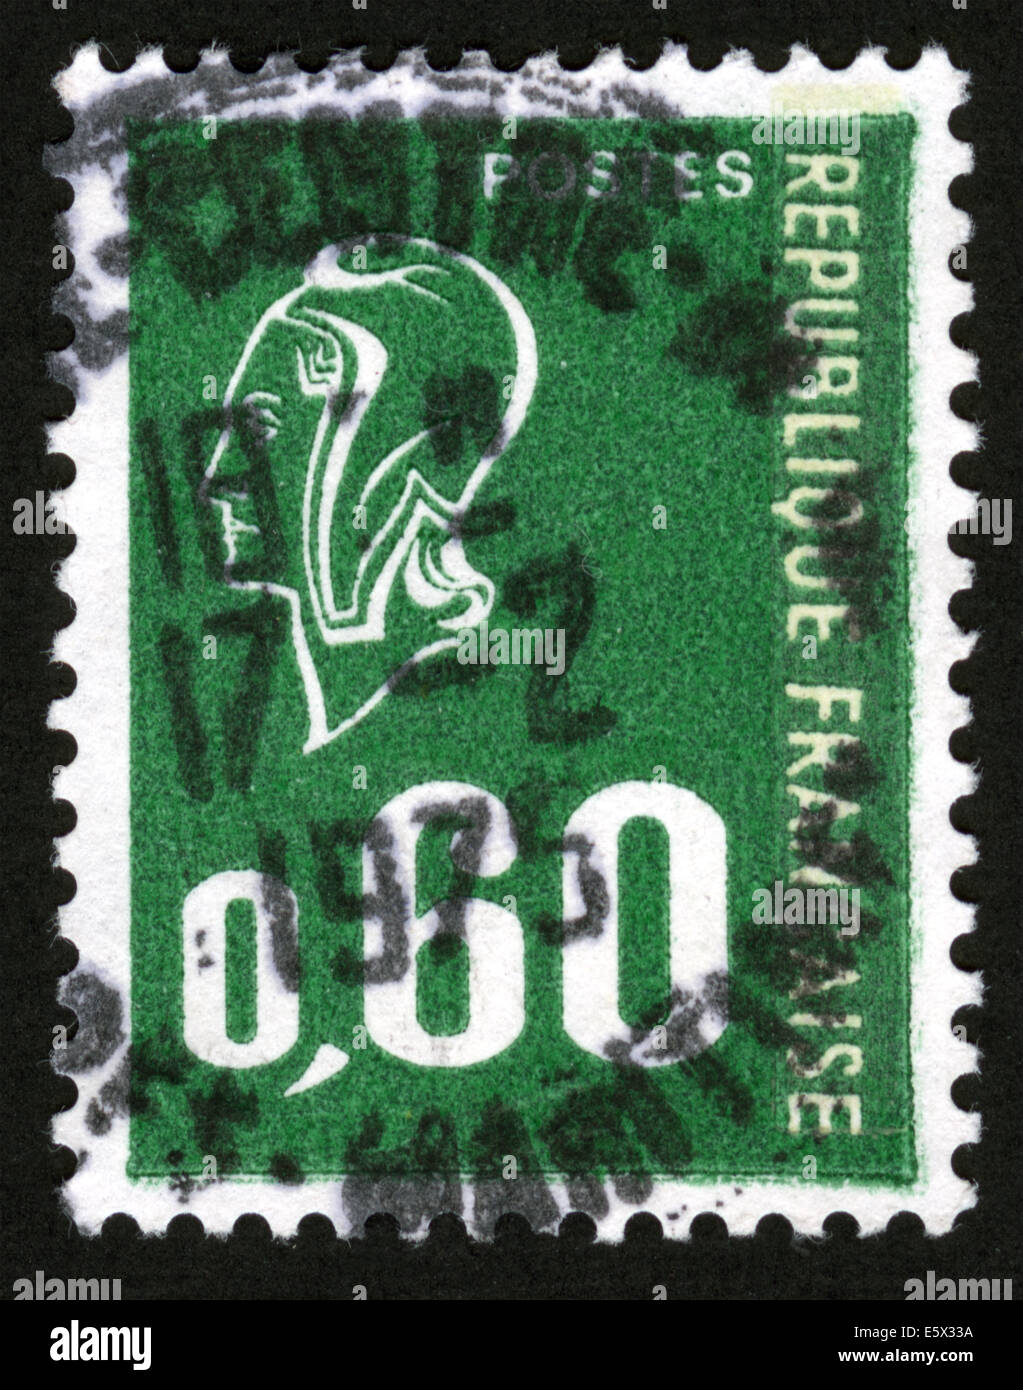 France - CIRCA 1976: Marianne type Bequet (1 band of phosphorus), Definitive Issue, 1976-08-02, - Stock Image